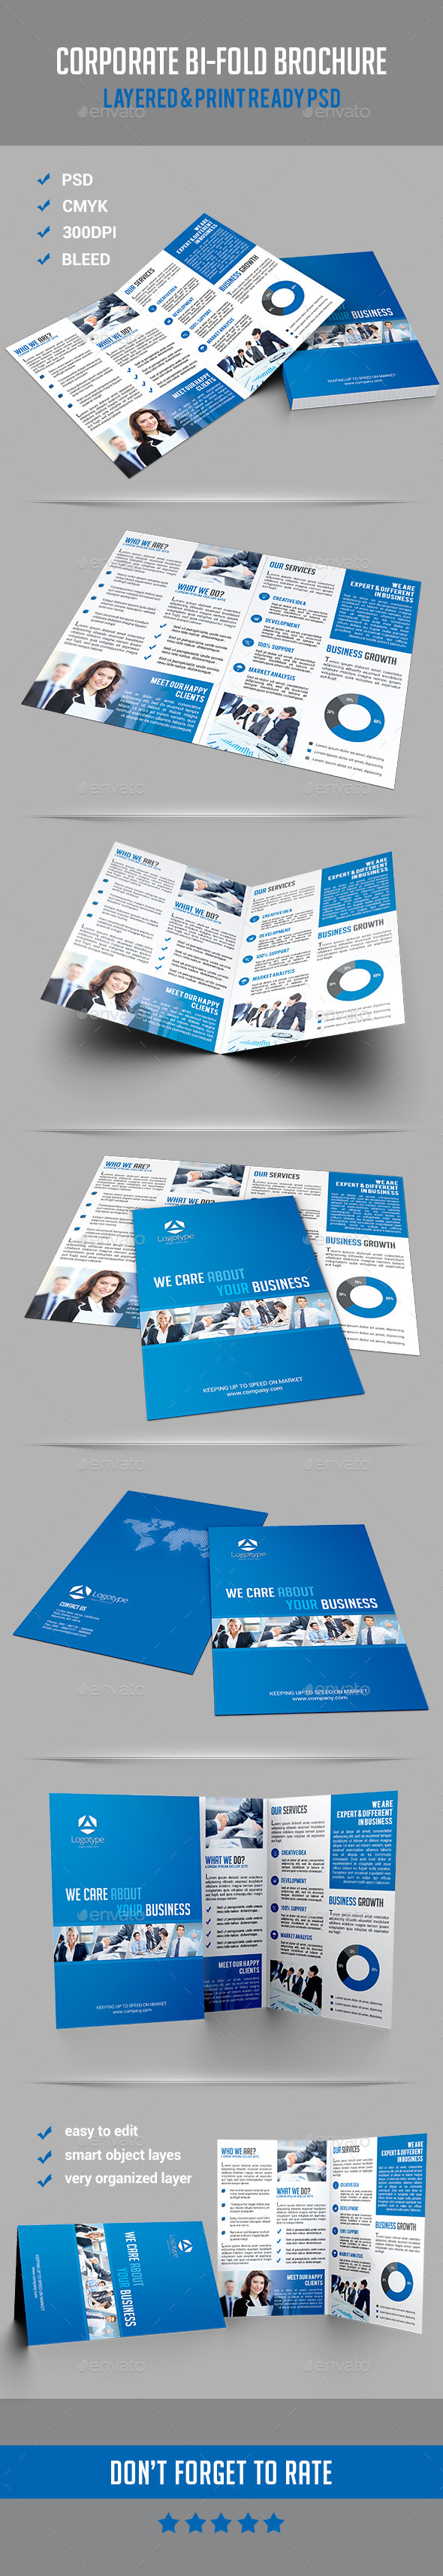 GraphicRiver Corporate Bi-Fold Brochure 10530263